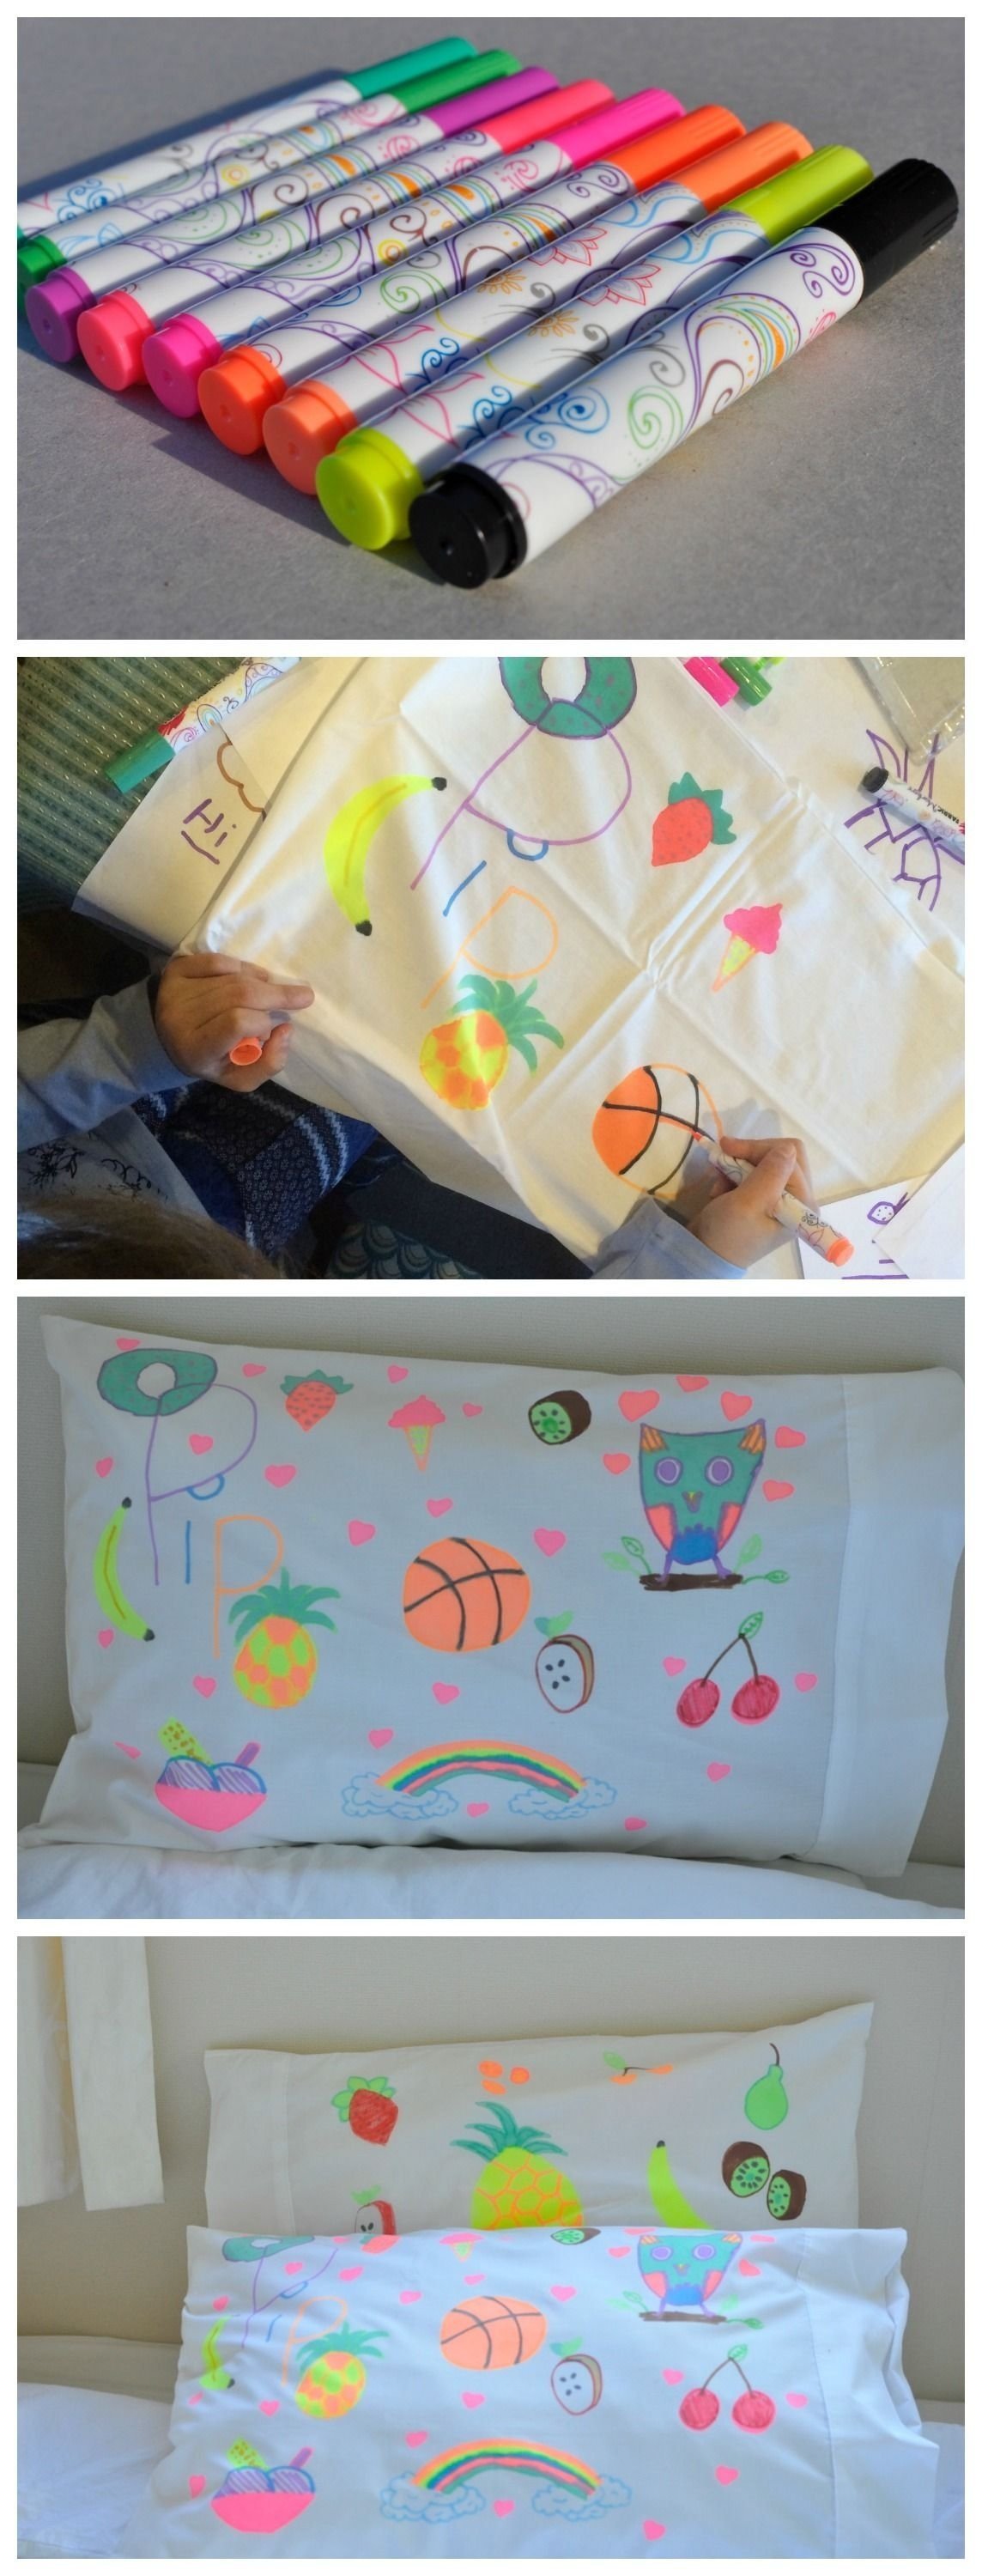 10 Fantastic Fun Ideas For A Sleepover a fun activity for kids design your own pillow case education